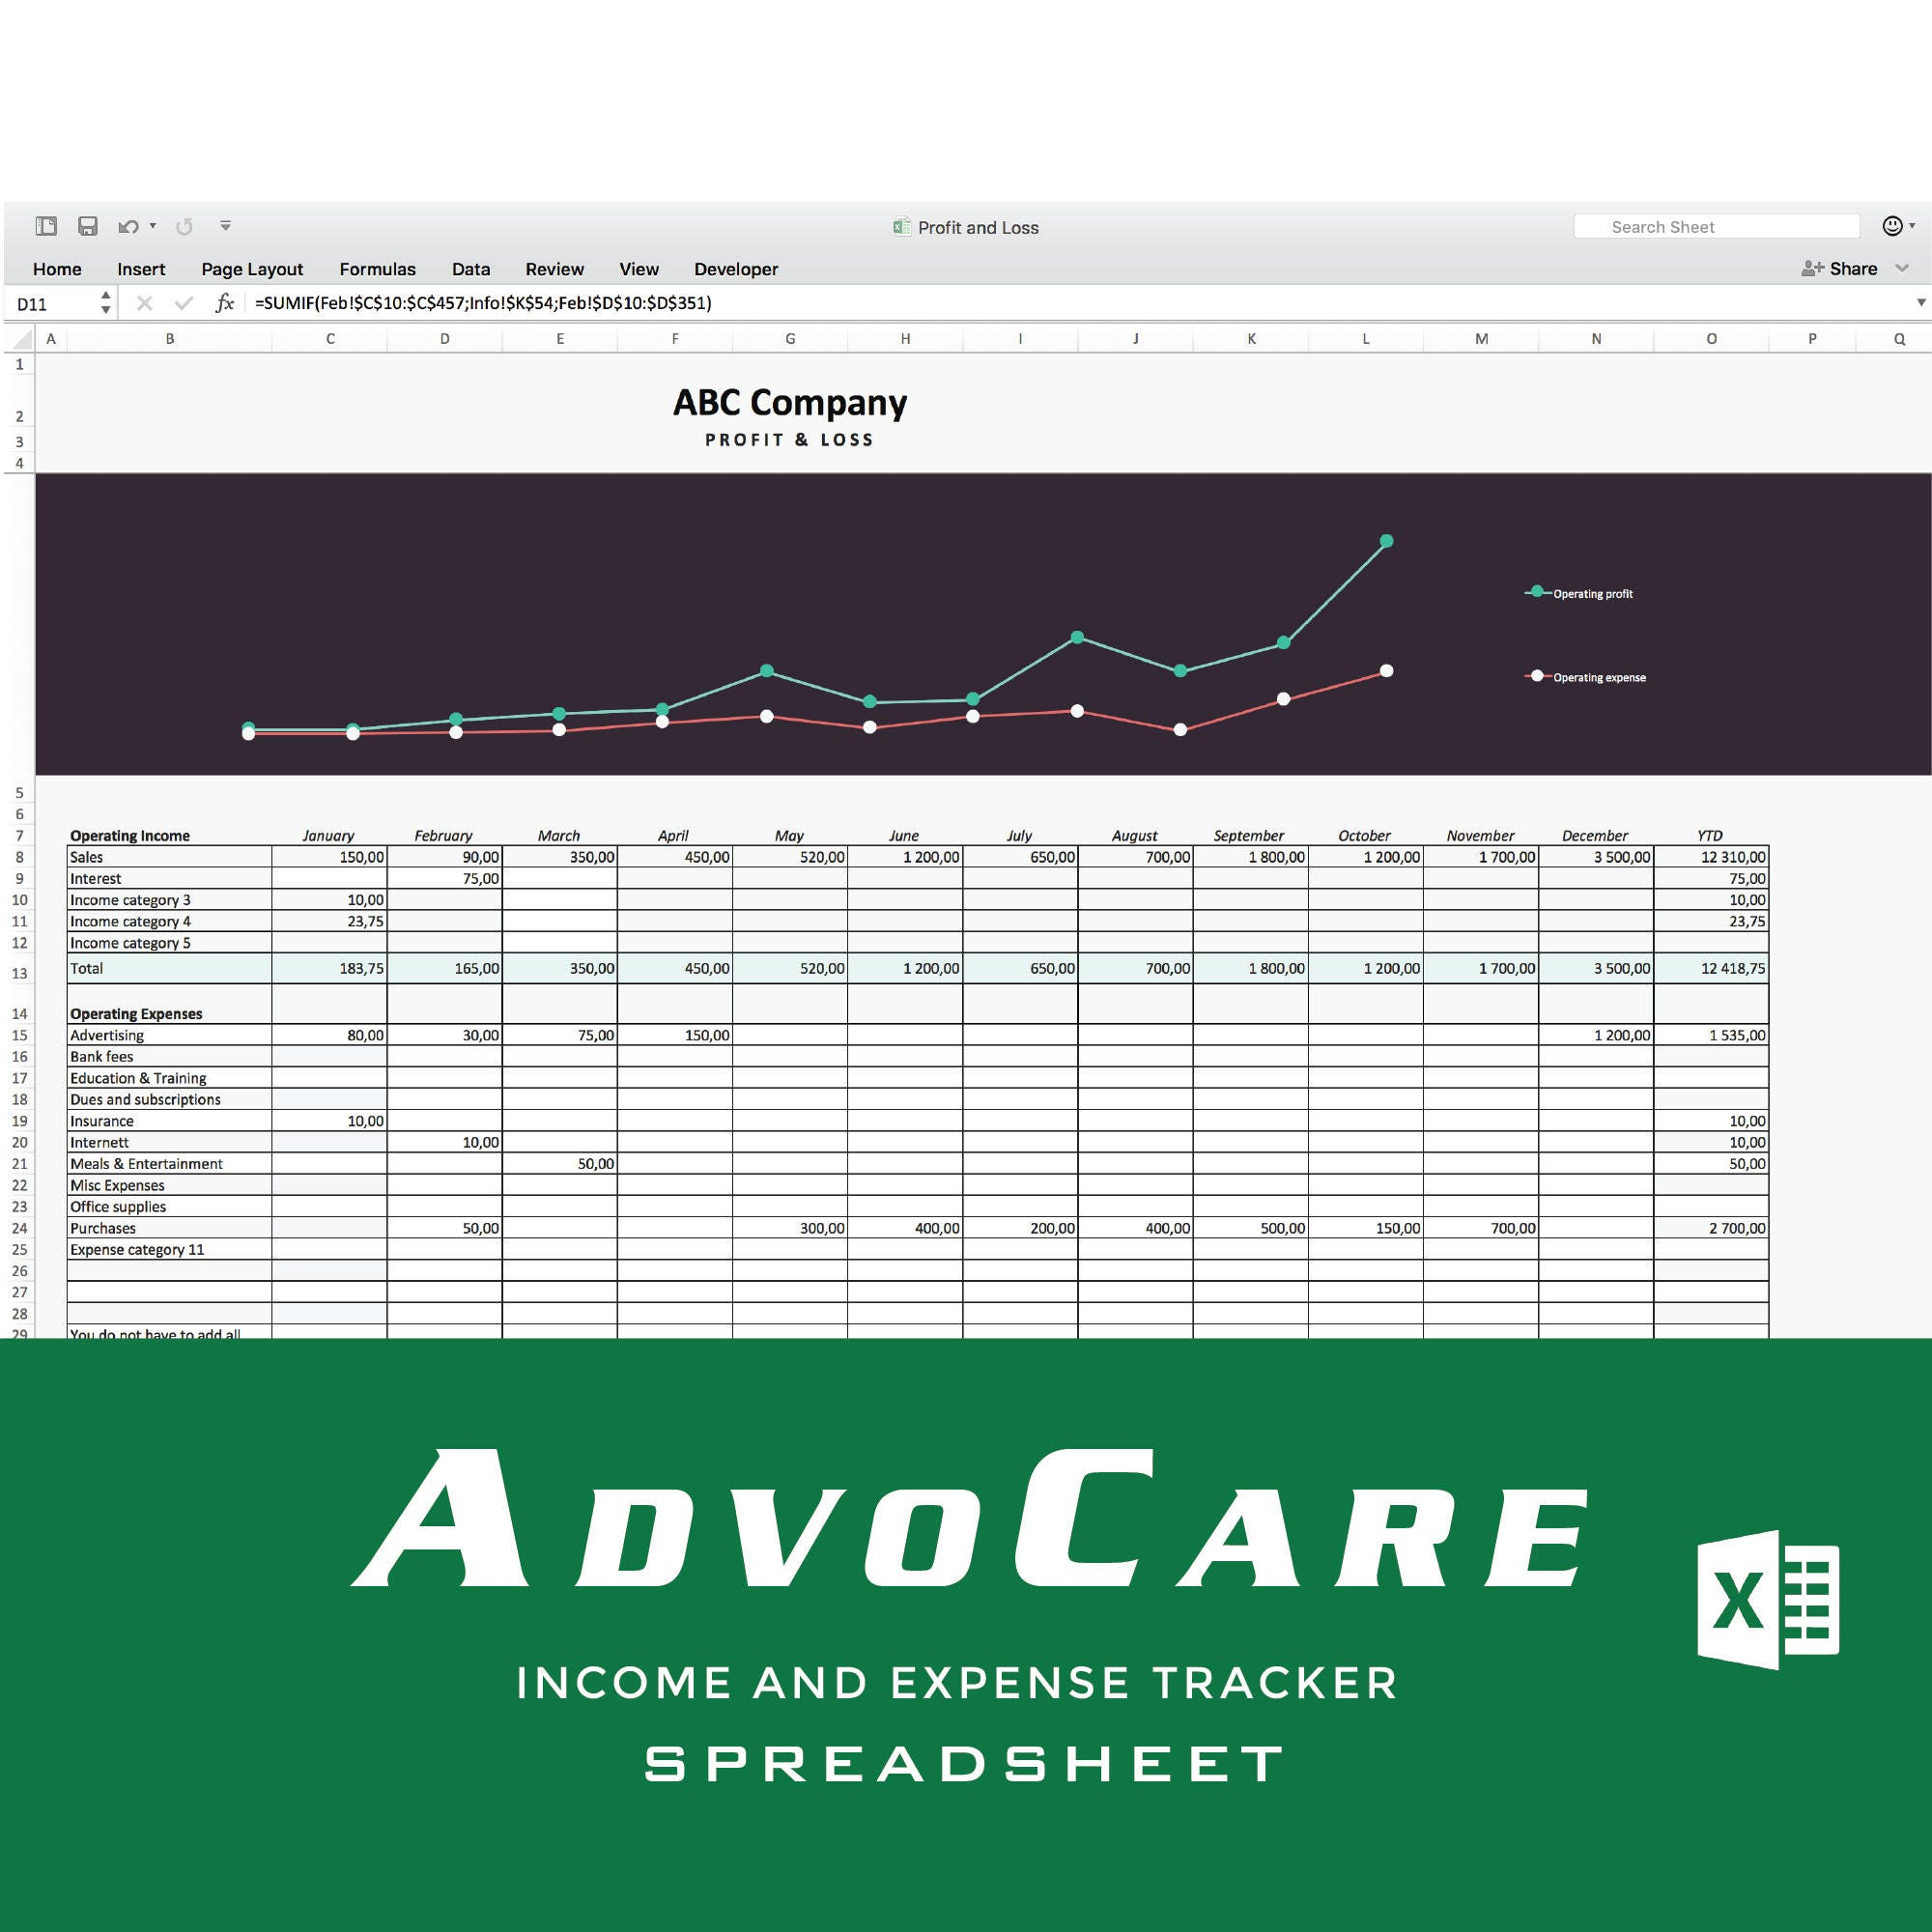 AdvoCare Distributor Spreadsheet Income And Expense